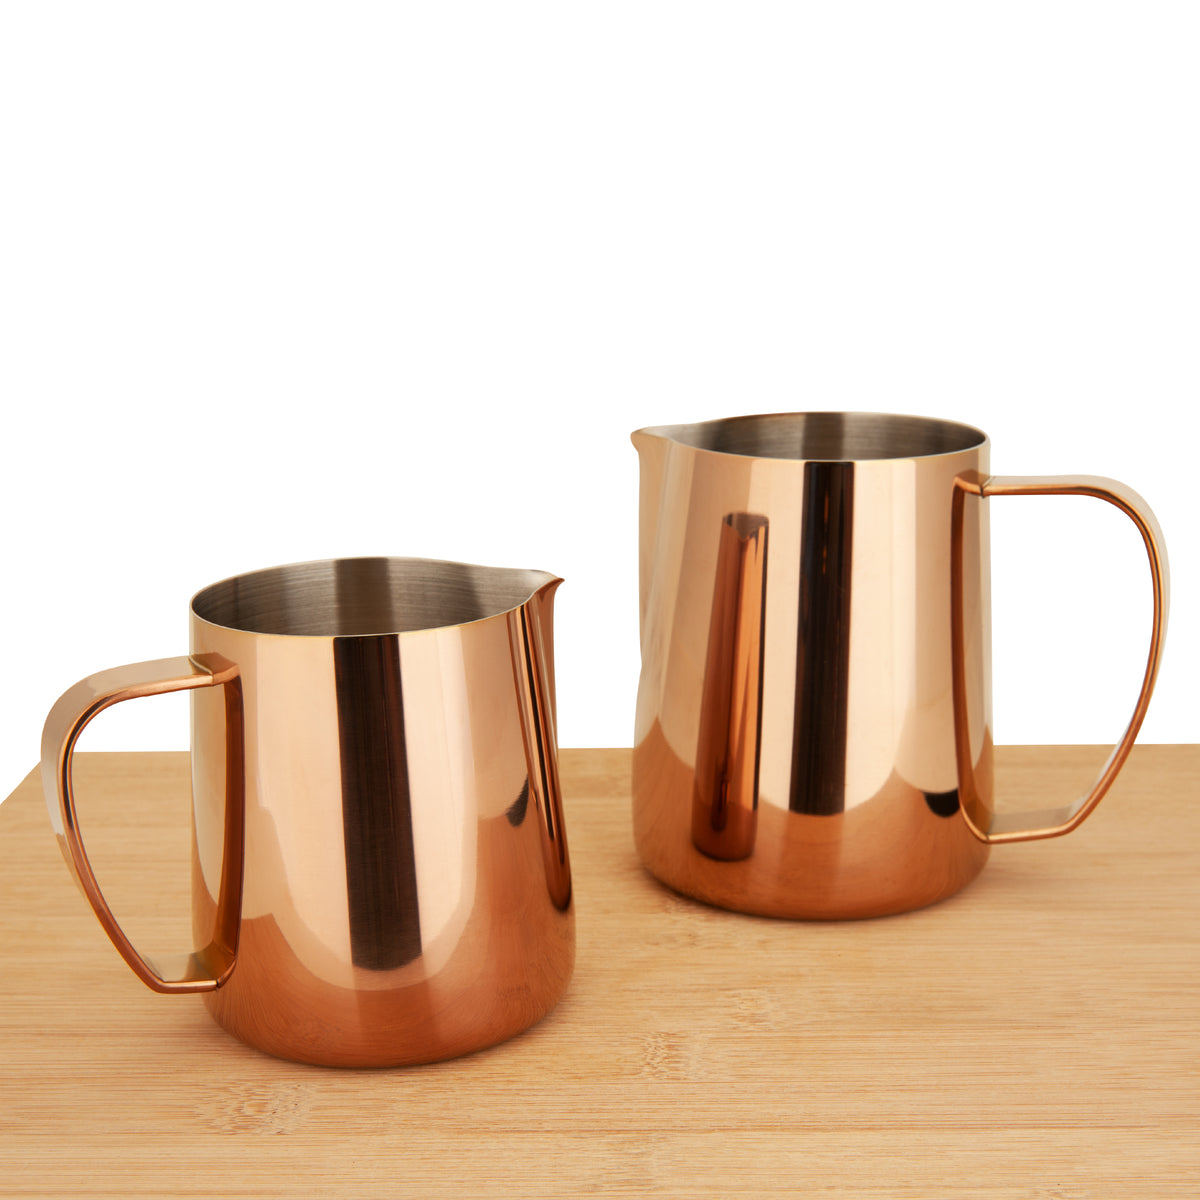 EspressoWorks Stainless Steel Milk Frothing Jug - Rose Gold (350ml and 600ml)